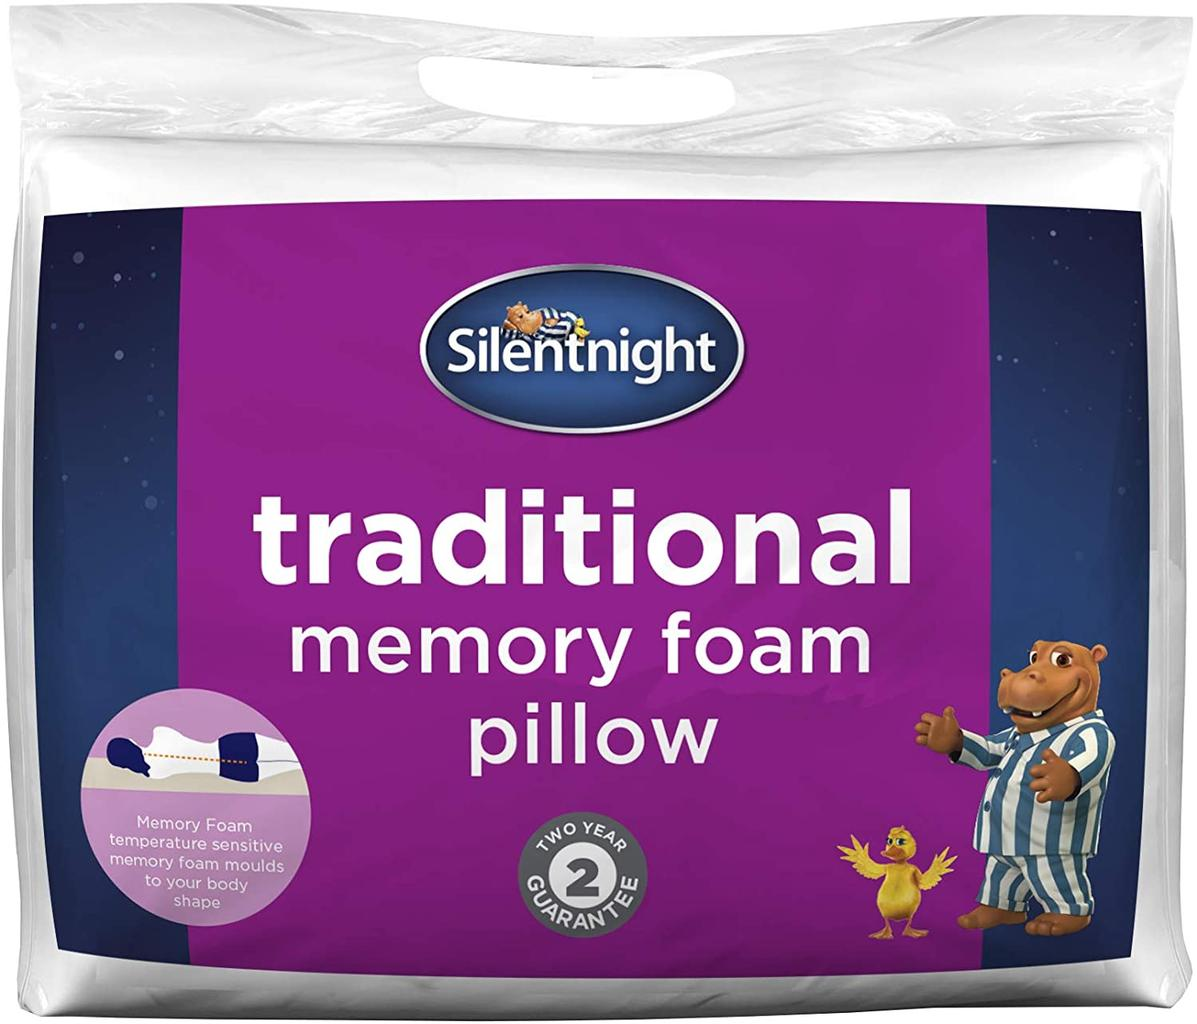 Silent Night Memory Foam Pillow, £8 at